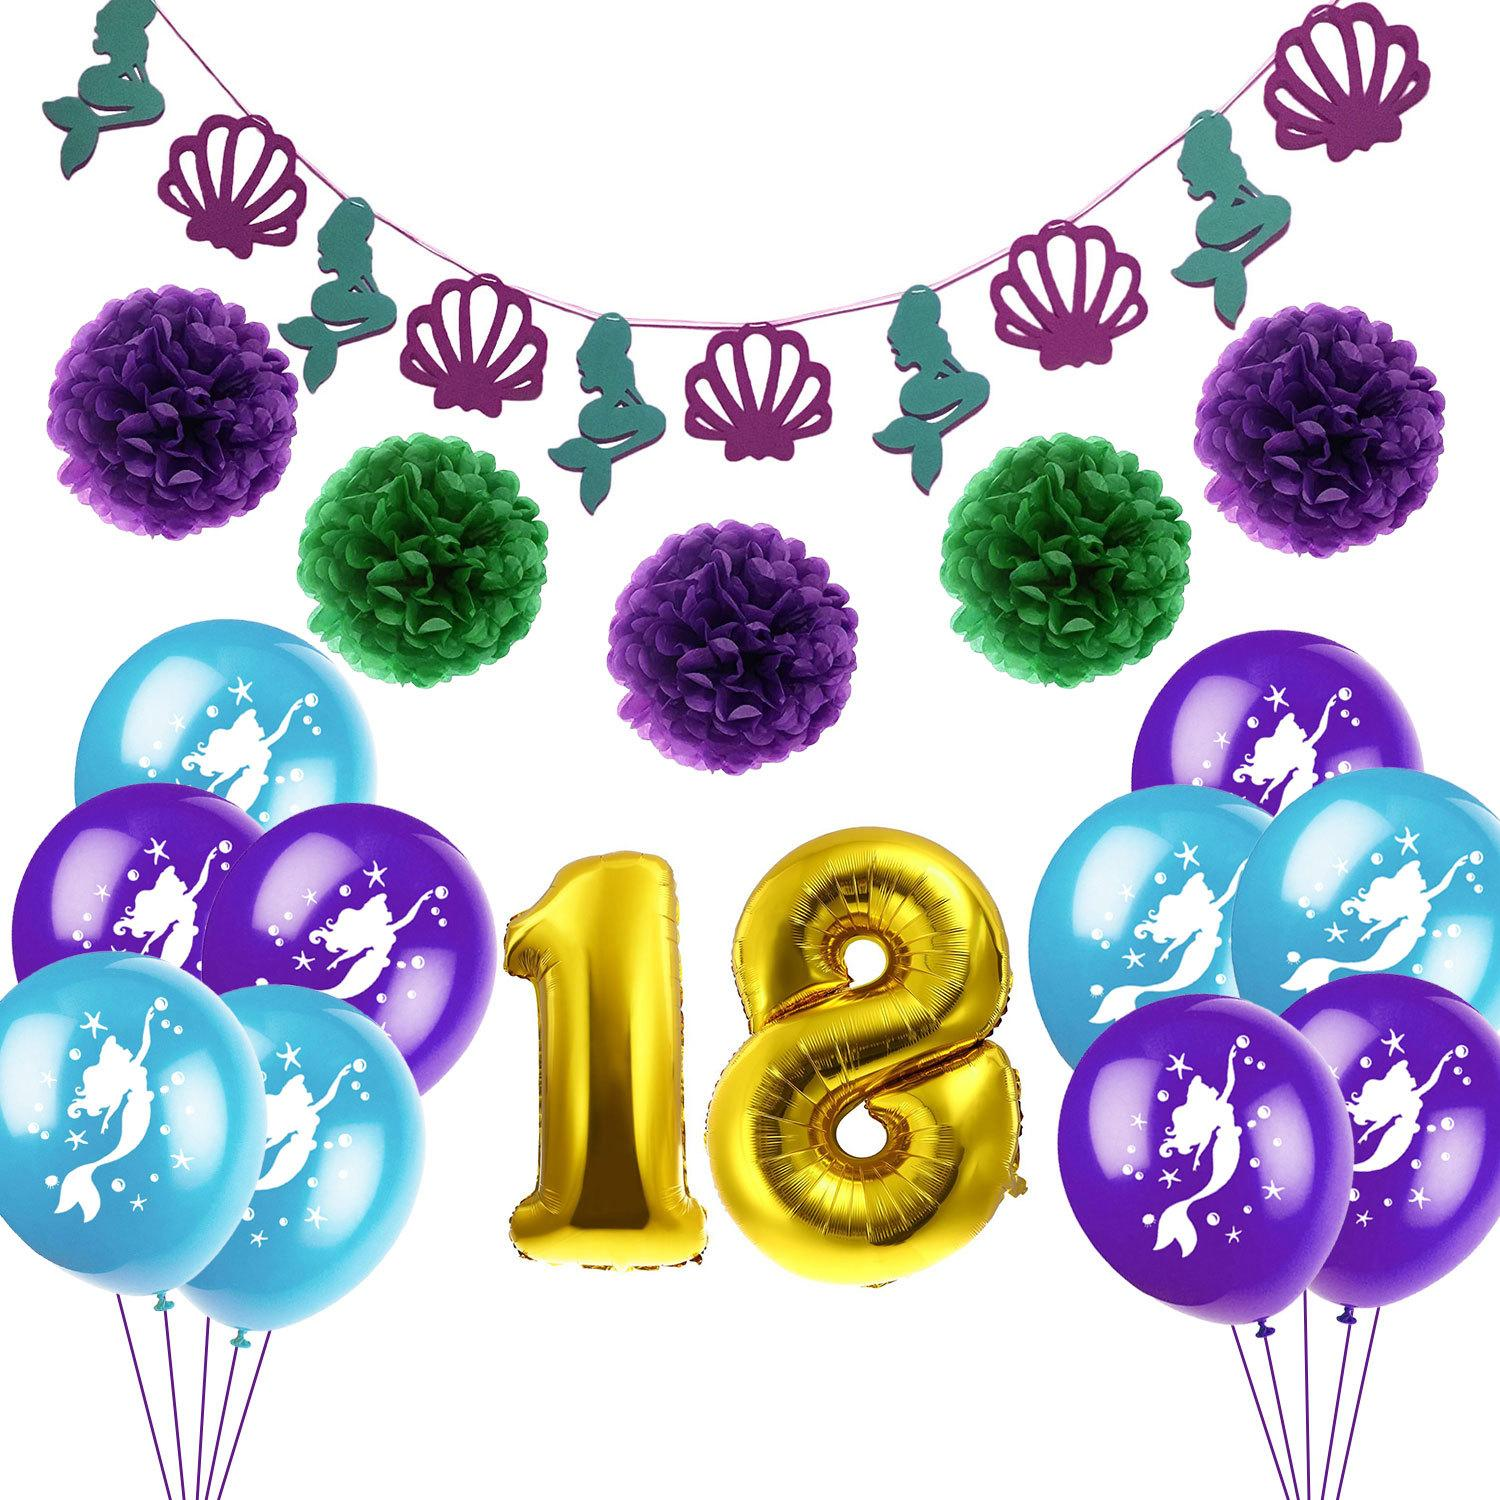 New 18th Birthday Mermaid Party Decoration Set Flag Paper Flower Balloon Supplies World Balloons Buy From Chengdaphone07